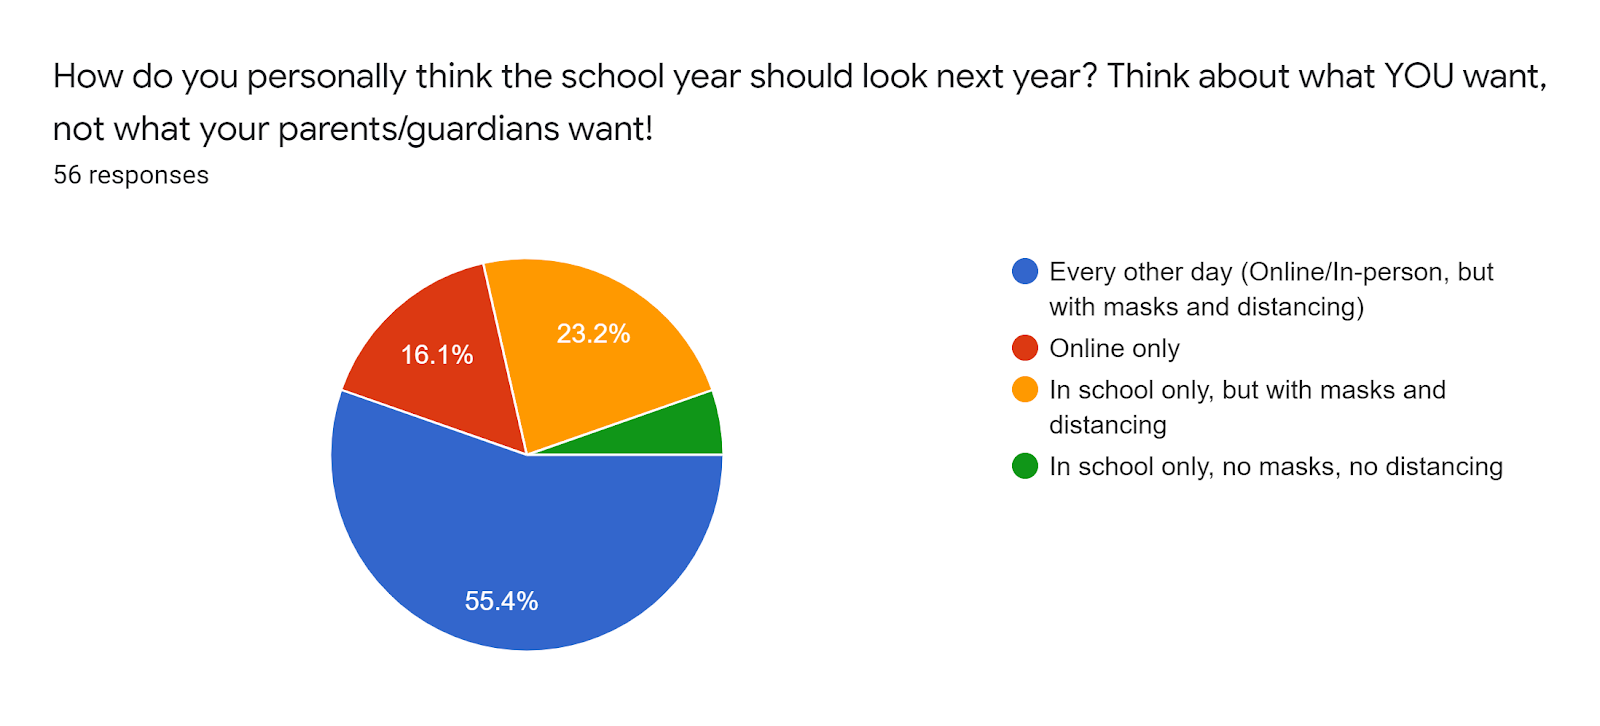 Forms response chart. Question title: How do you personally think the school year should look next year? Think about what YOU want, not what your parents/guardians want!. Number of responses: 56 responses.